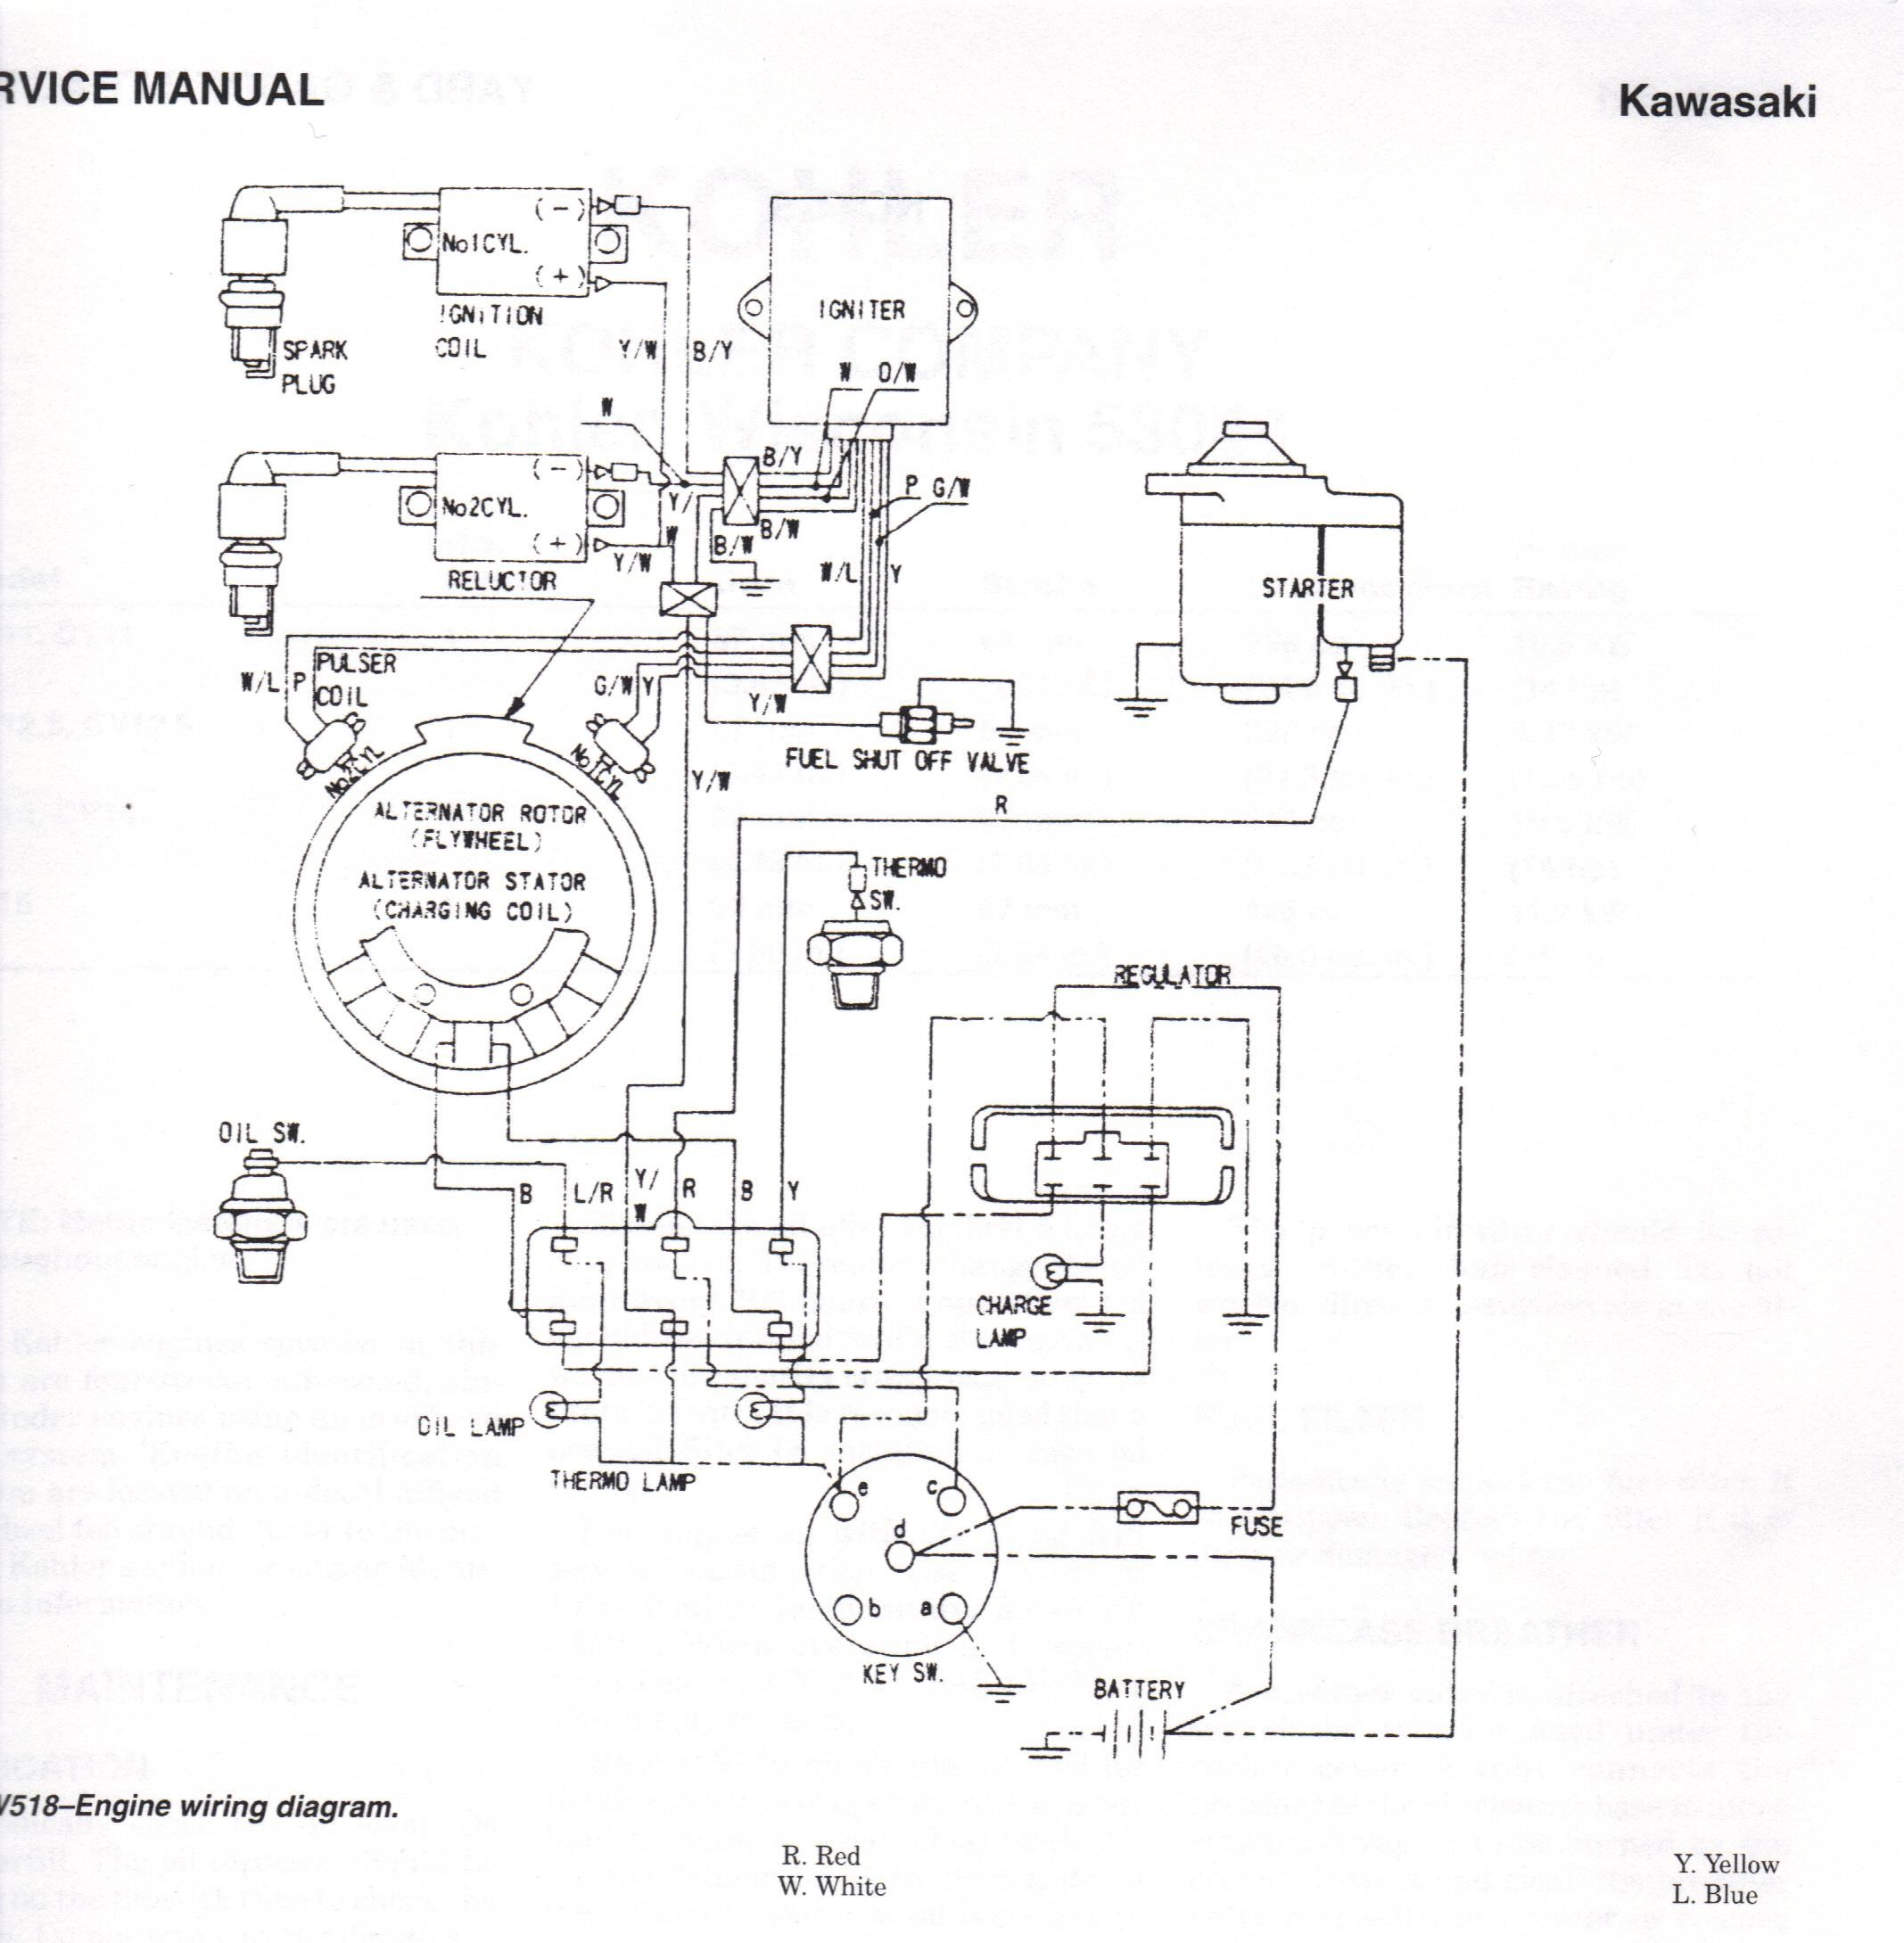 [DIAGRAM] Nissan Cabstar Engine Wiring Diagram 08 FULL